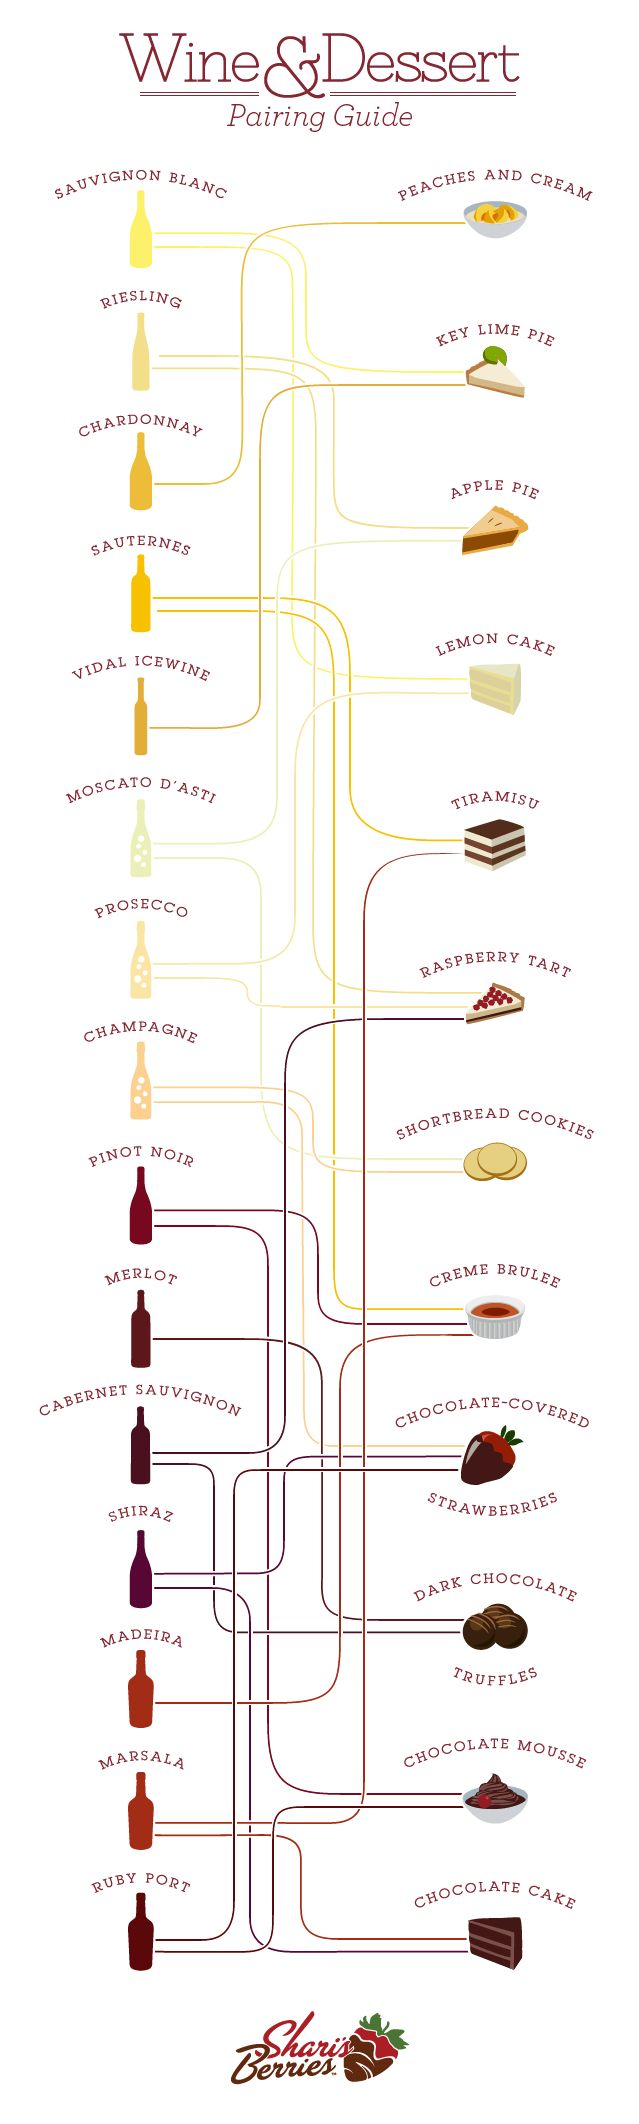 #Wine & #Dessert Pairings. Good to know! (Though in our opinion, wine can pair with just about anything..)